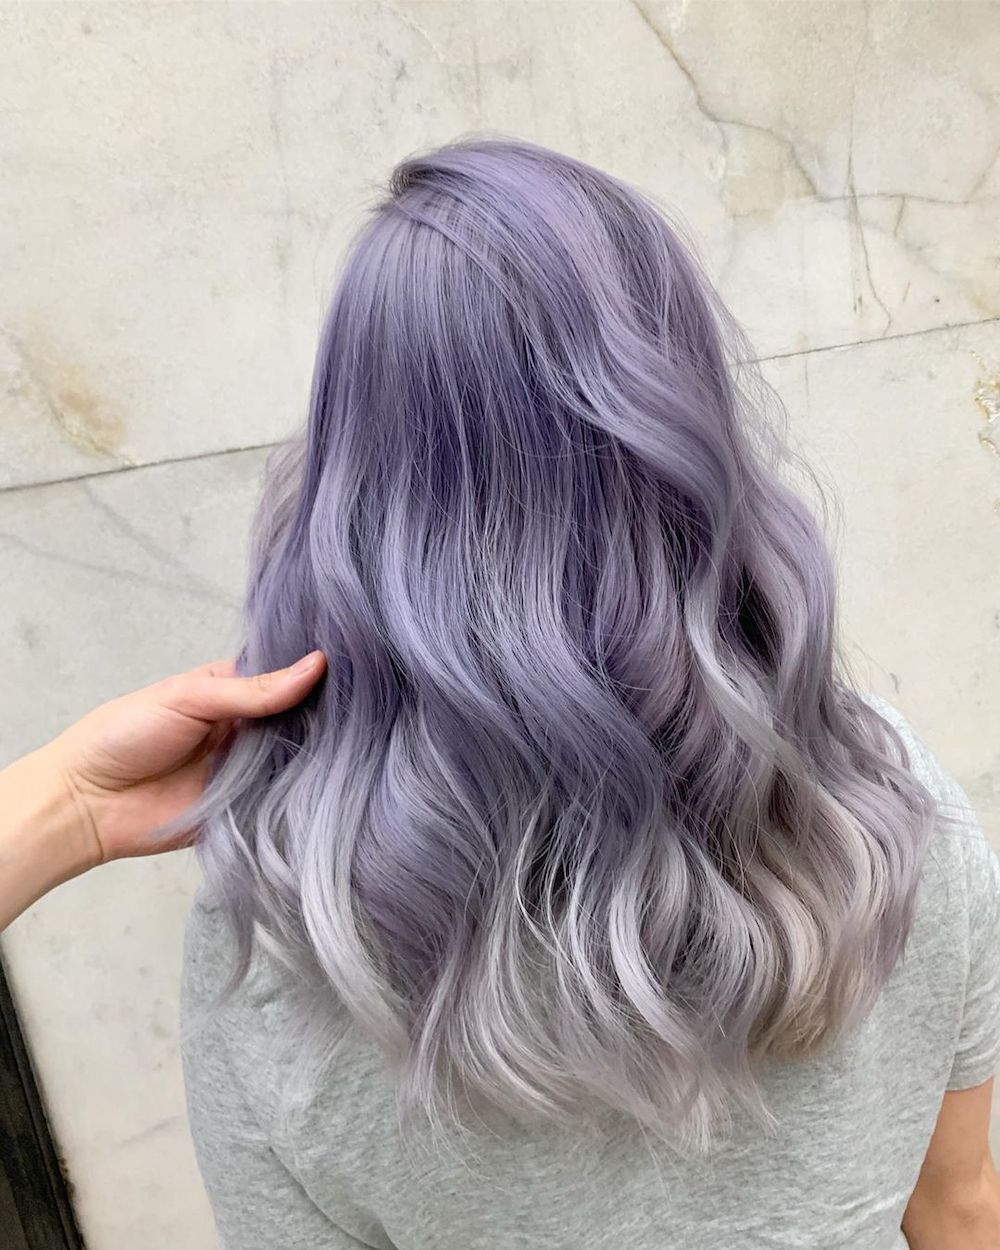 Smoky Pastel Hair Colors Are All the Rage on Instagram ...